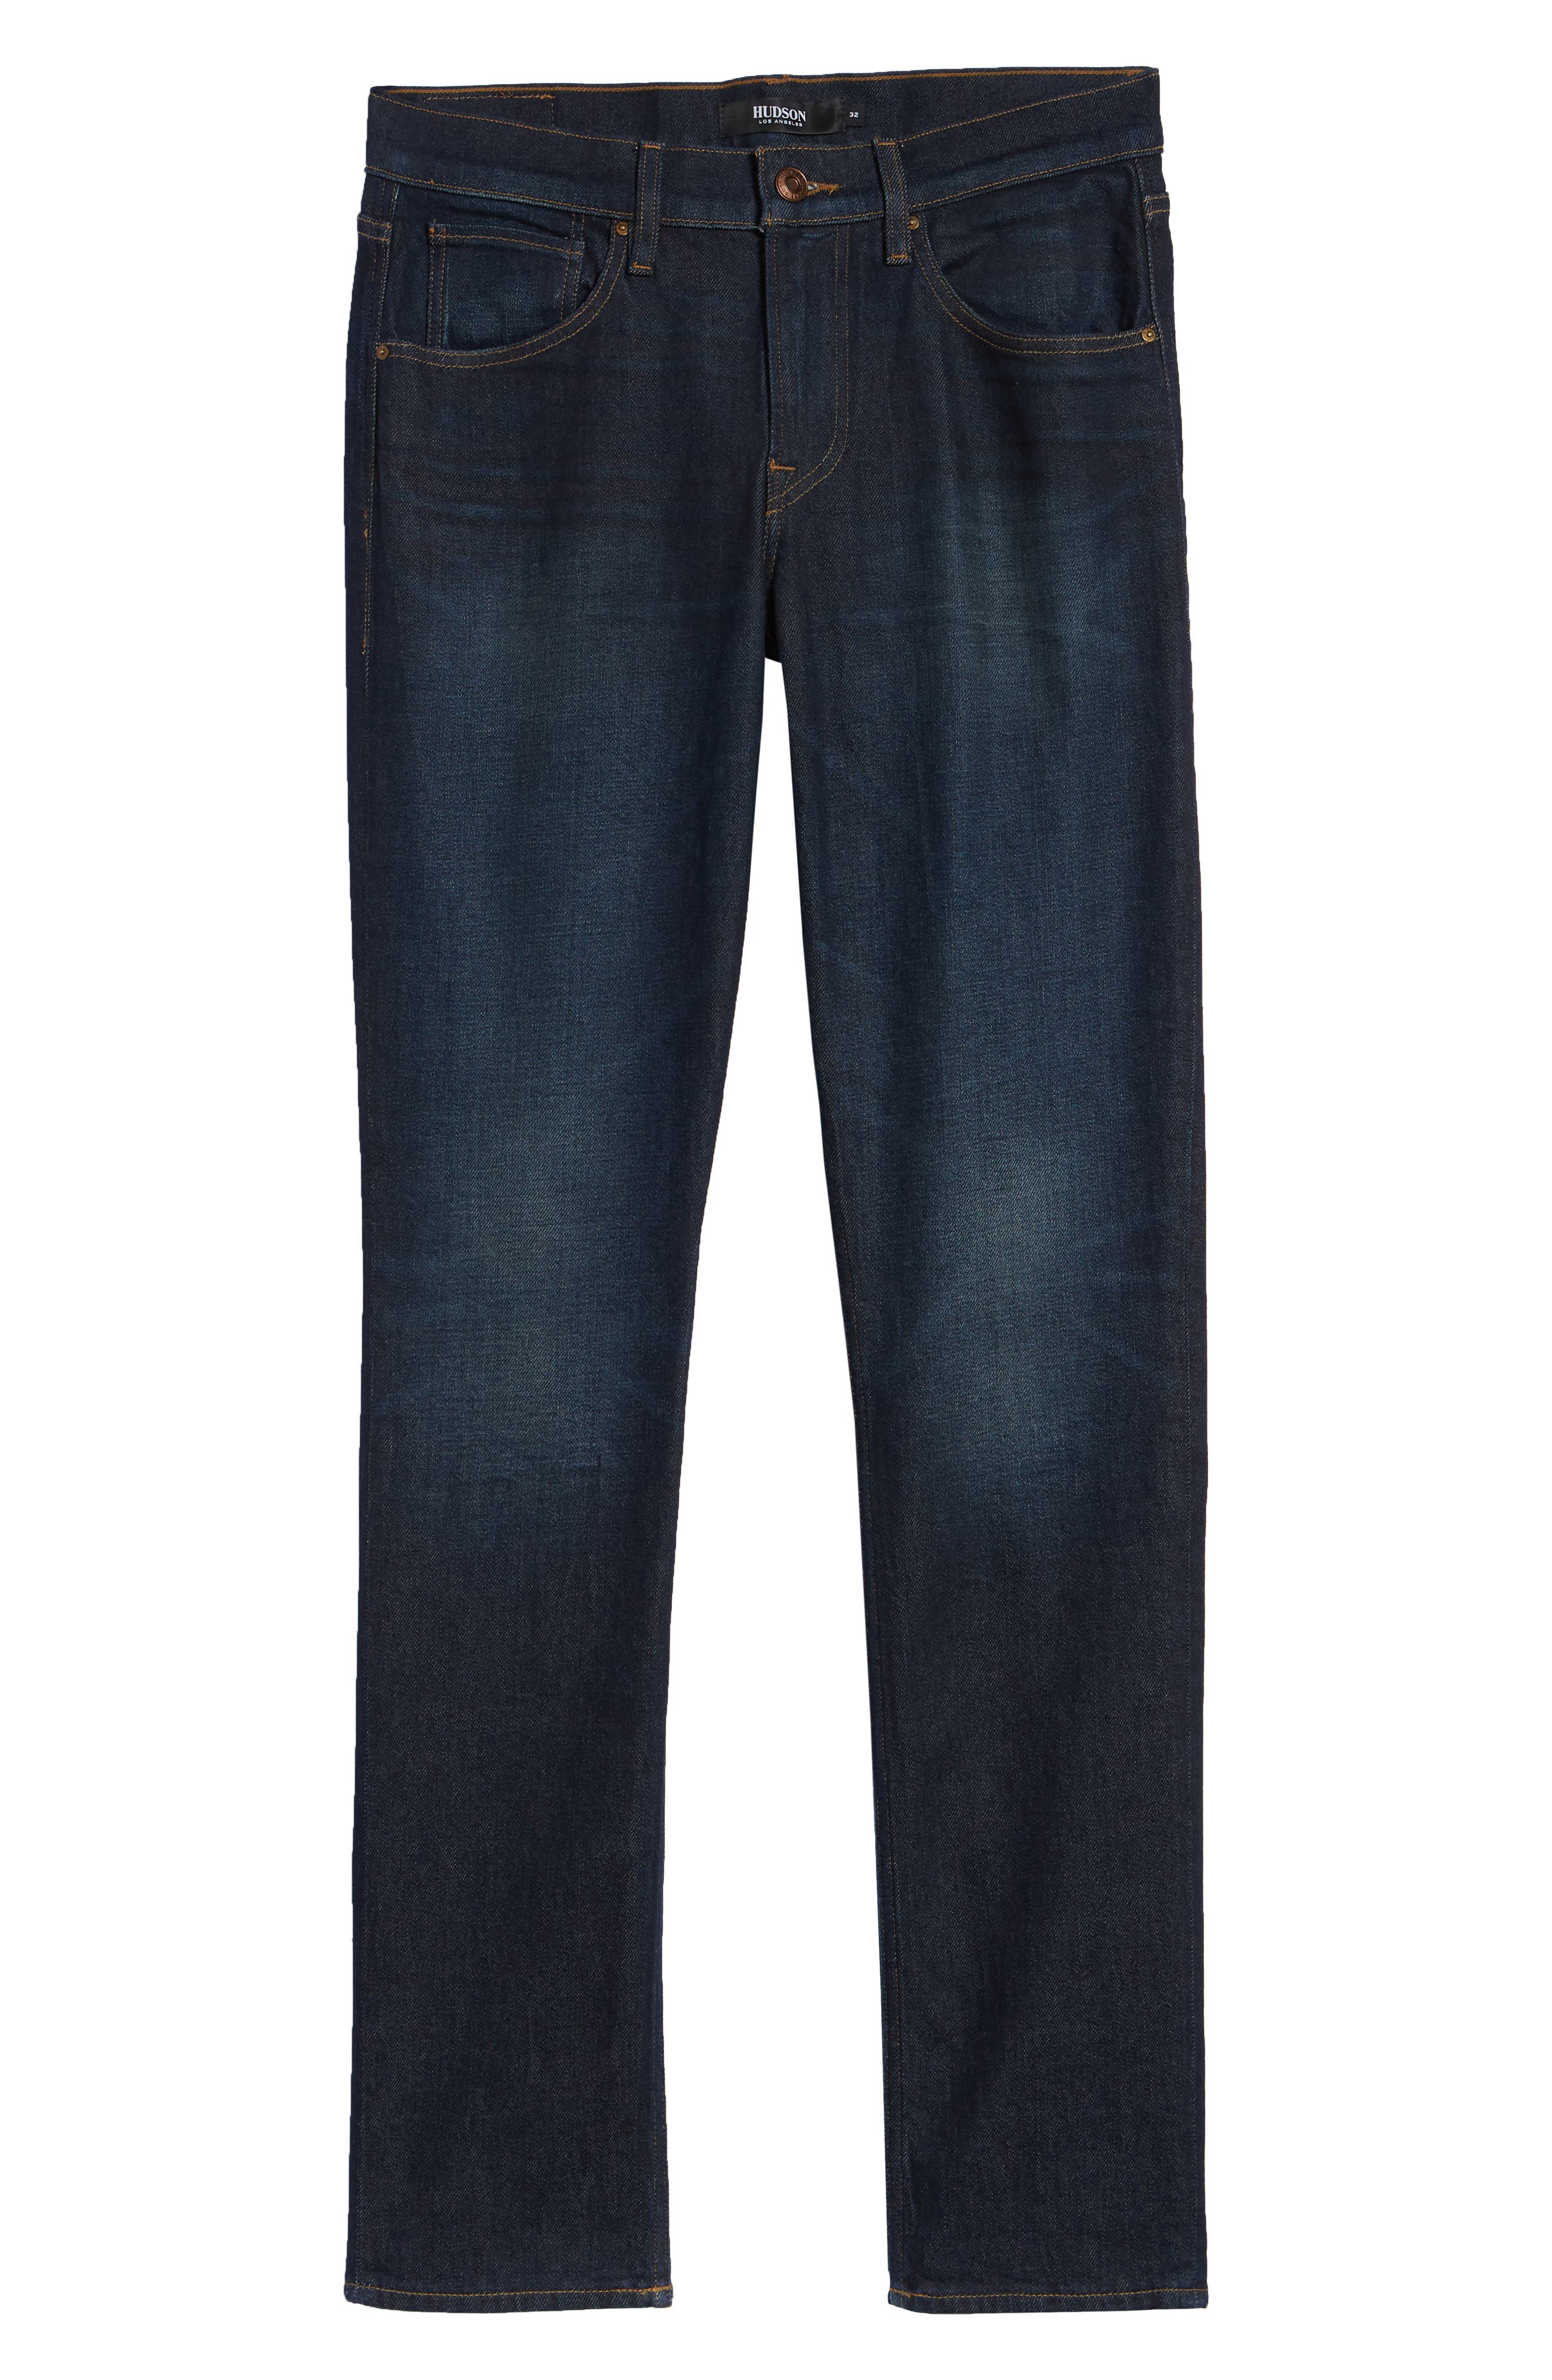 HUDSON JEANS, Blake Slim Fit Jeans, Alternate thumbnail 6, color, VERKLER